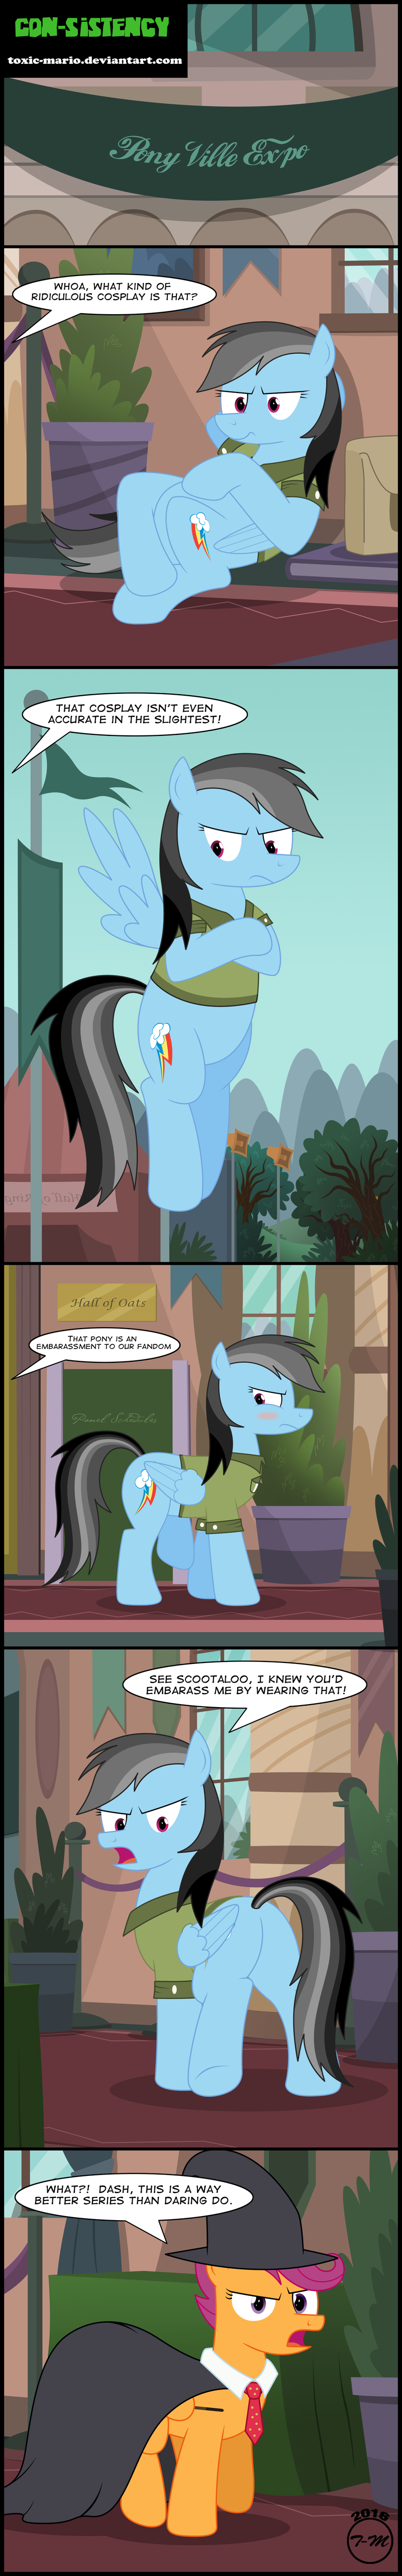 Harry Potter stranger than fan fiction comic daring do Scootaloo rainbow dash - 8966123776